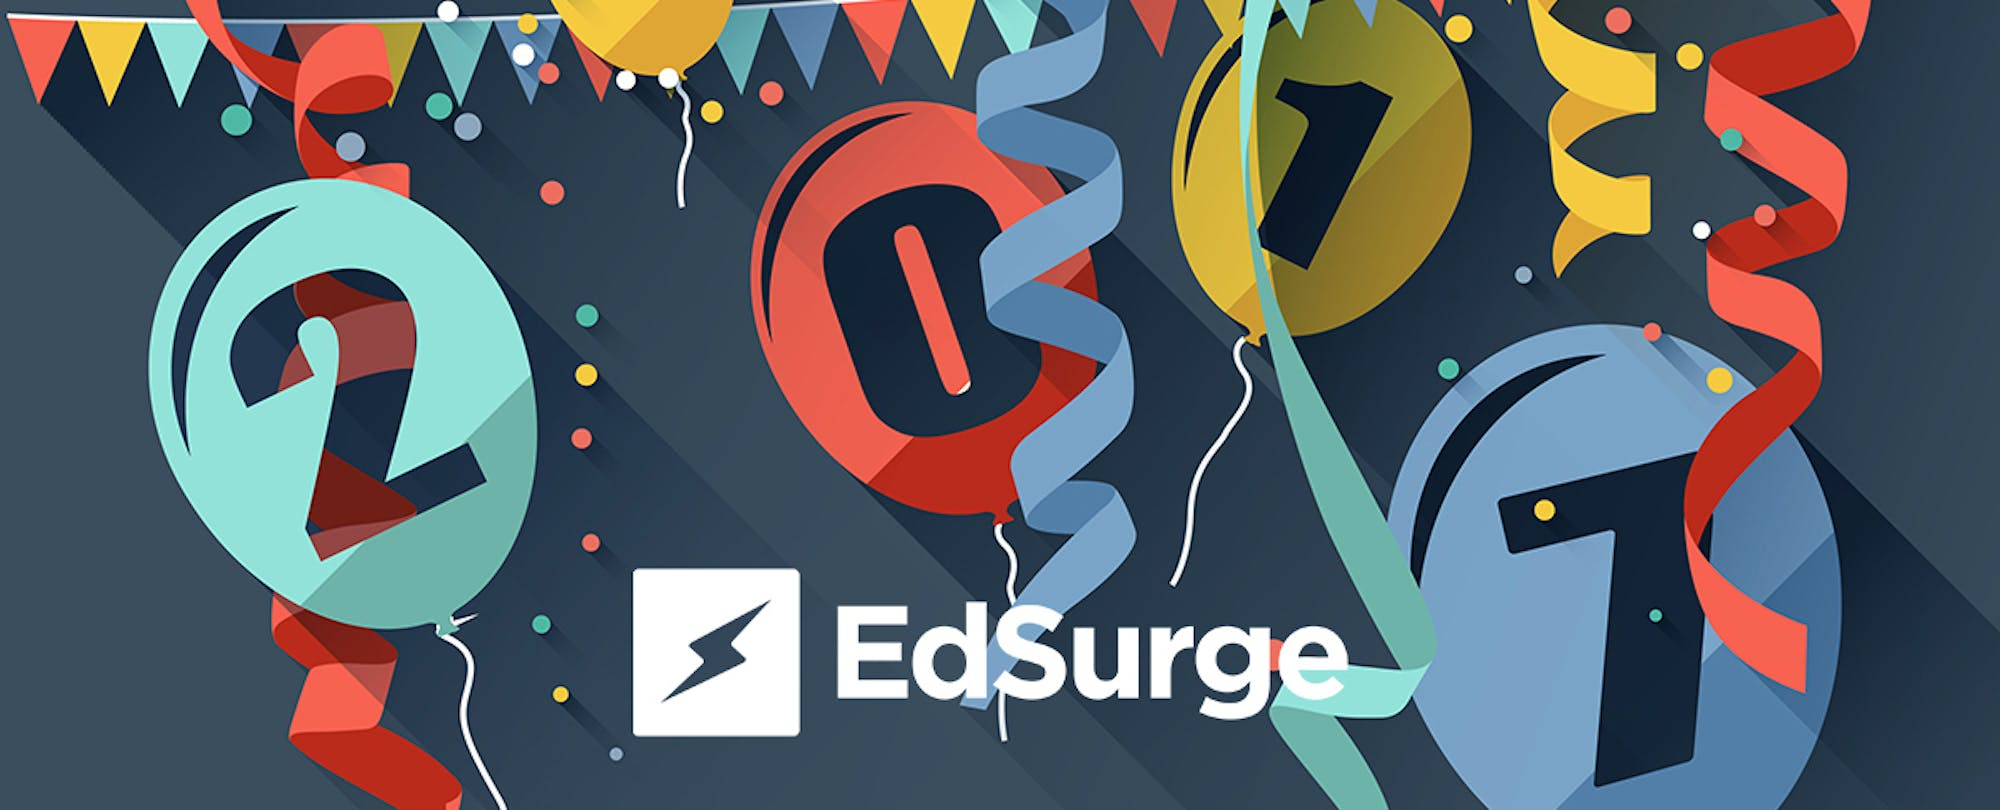 EdSurge 2017 Personal Statements